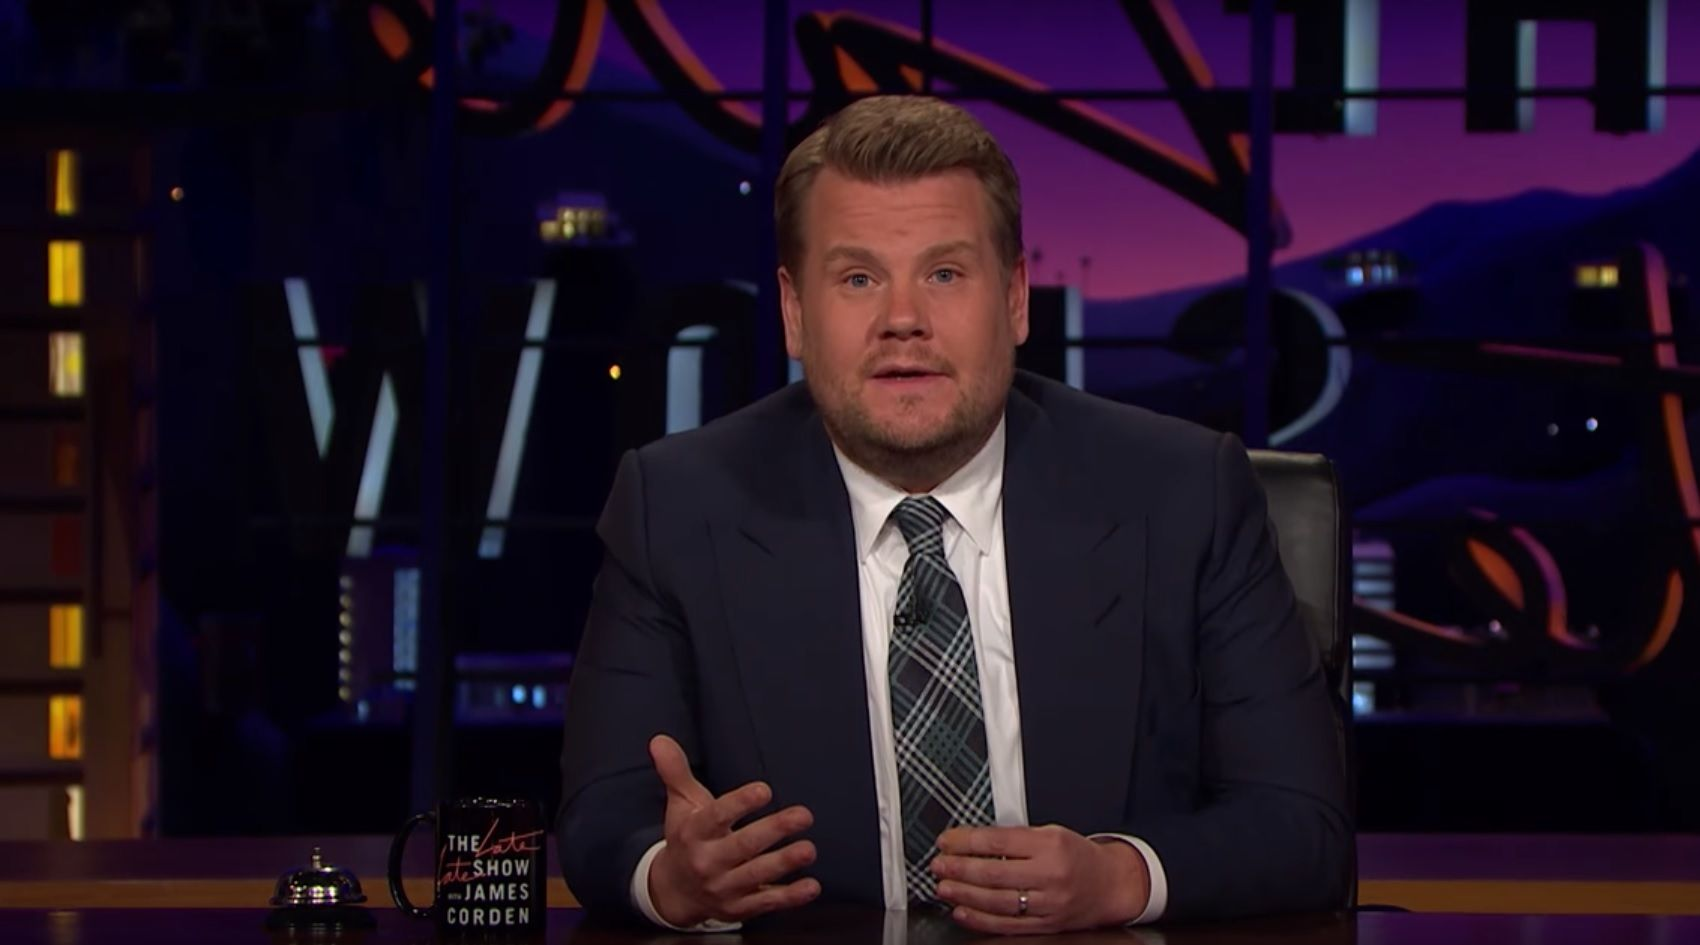 James Corden speaks about Manchester attack